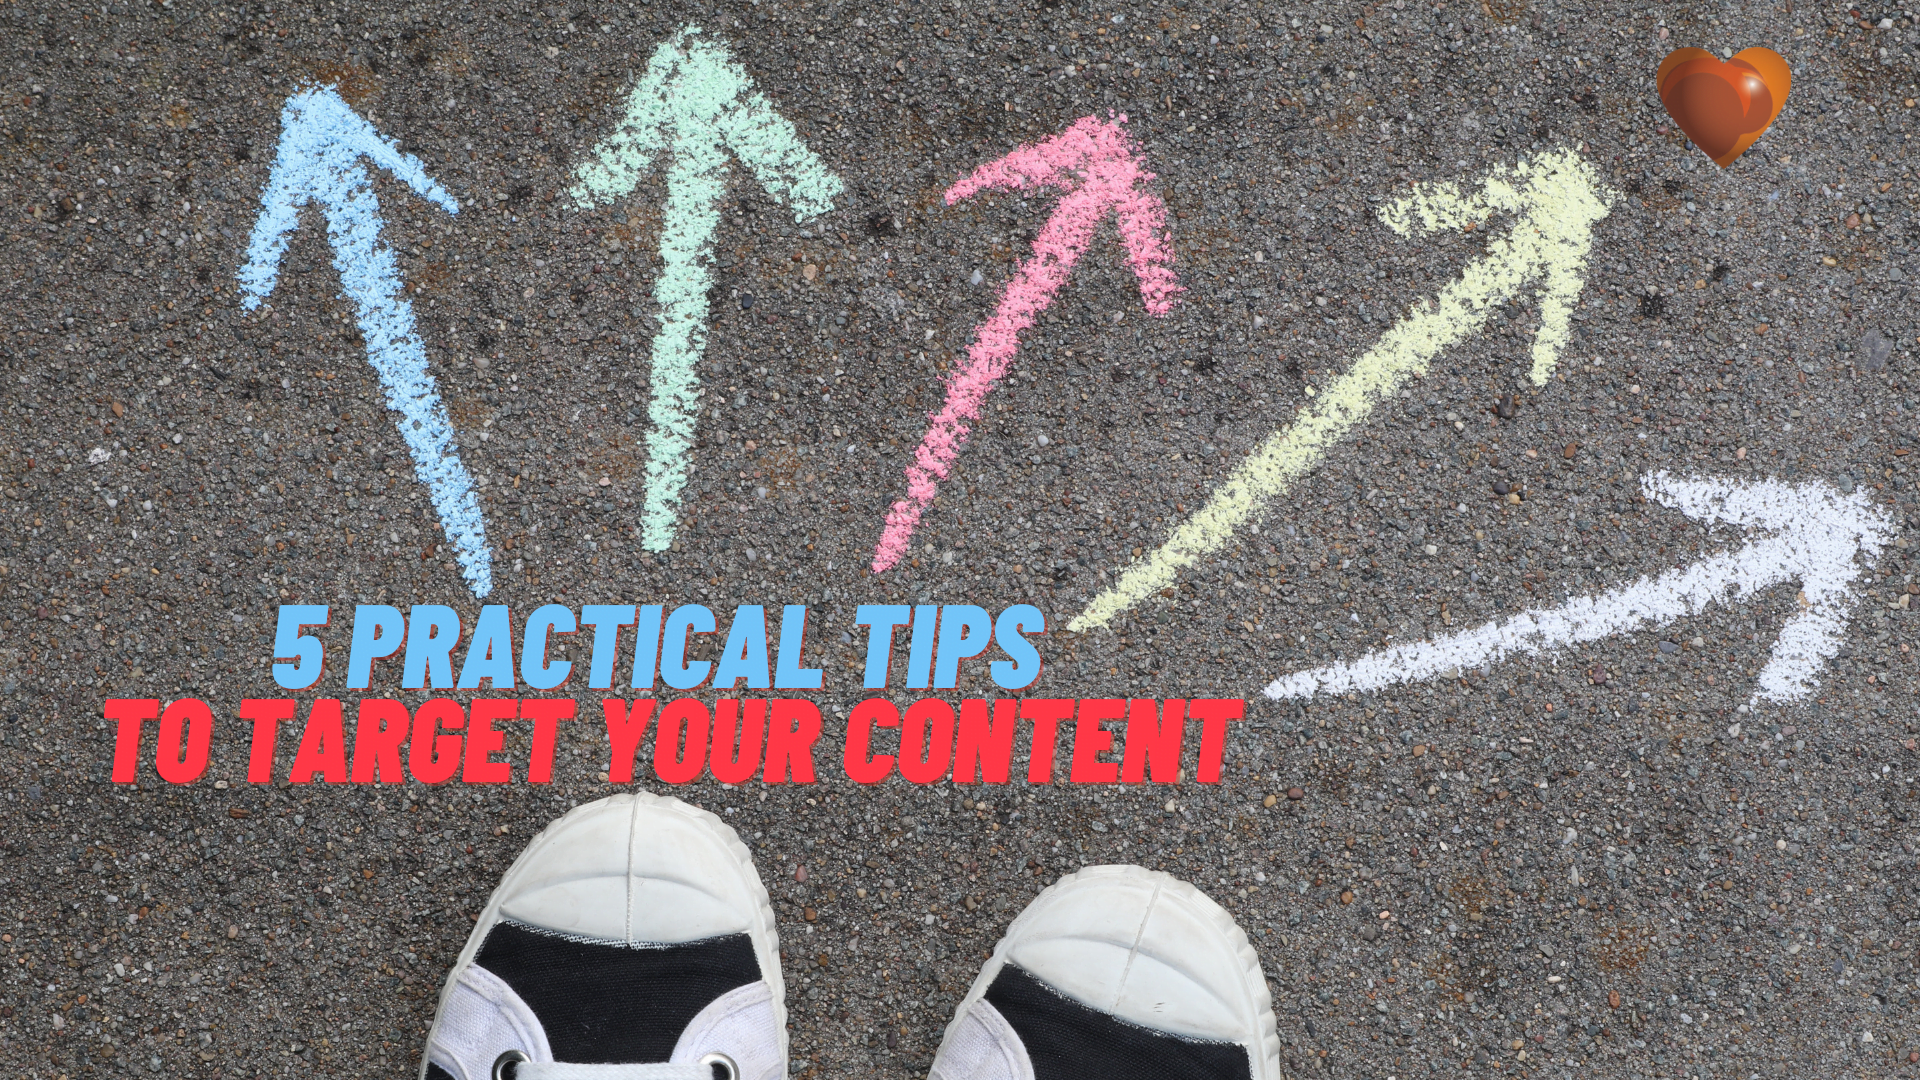 5 Practical Tips to Target Your Content Why targeted writing is crucial when trying to reach your target audience. Chalk arrows pointing in different directions on the pavement.